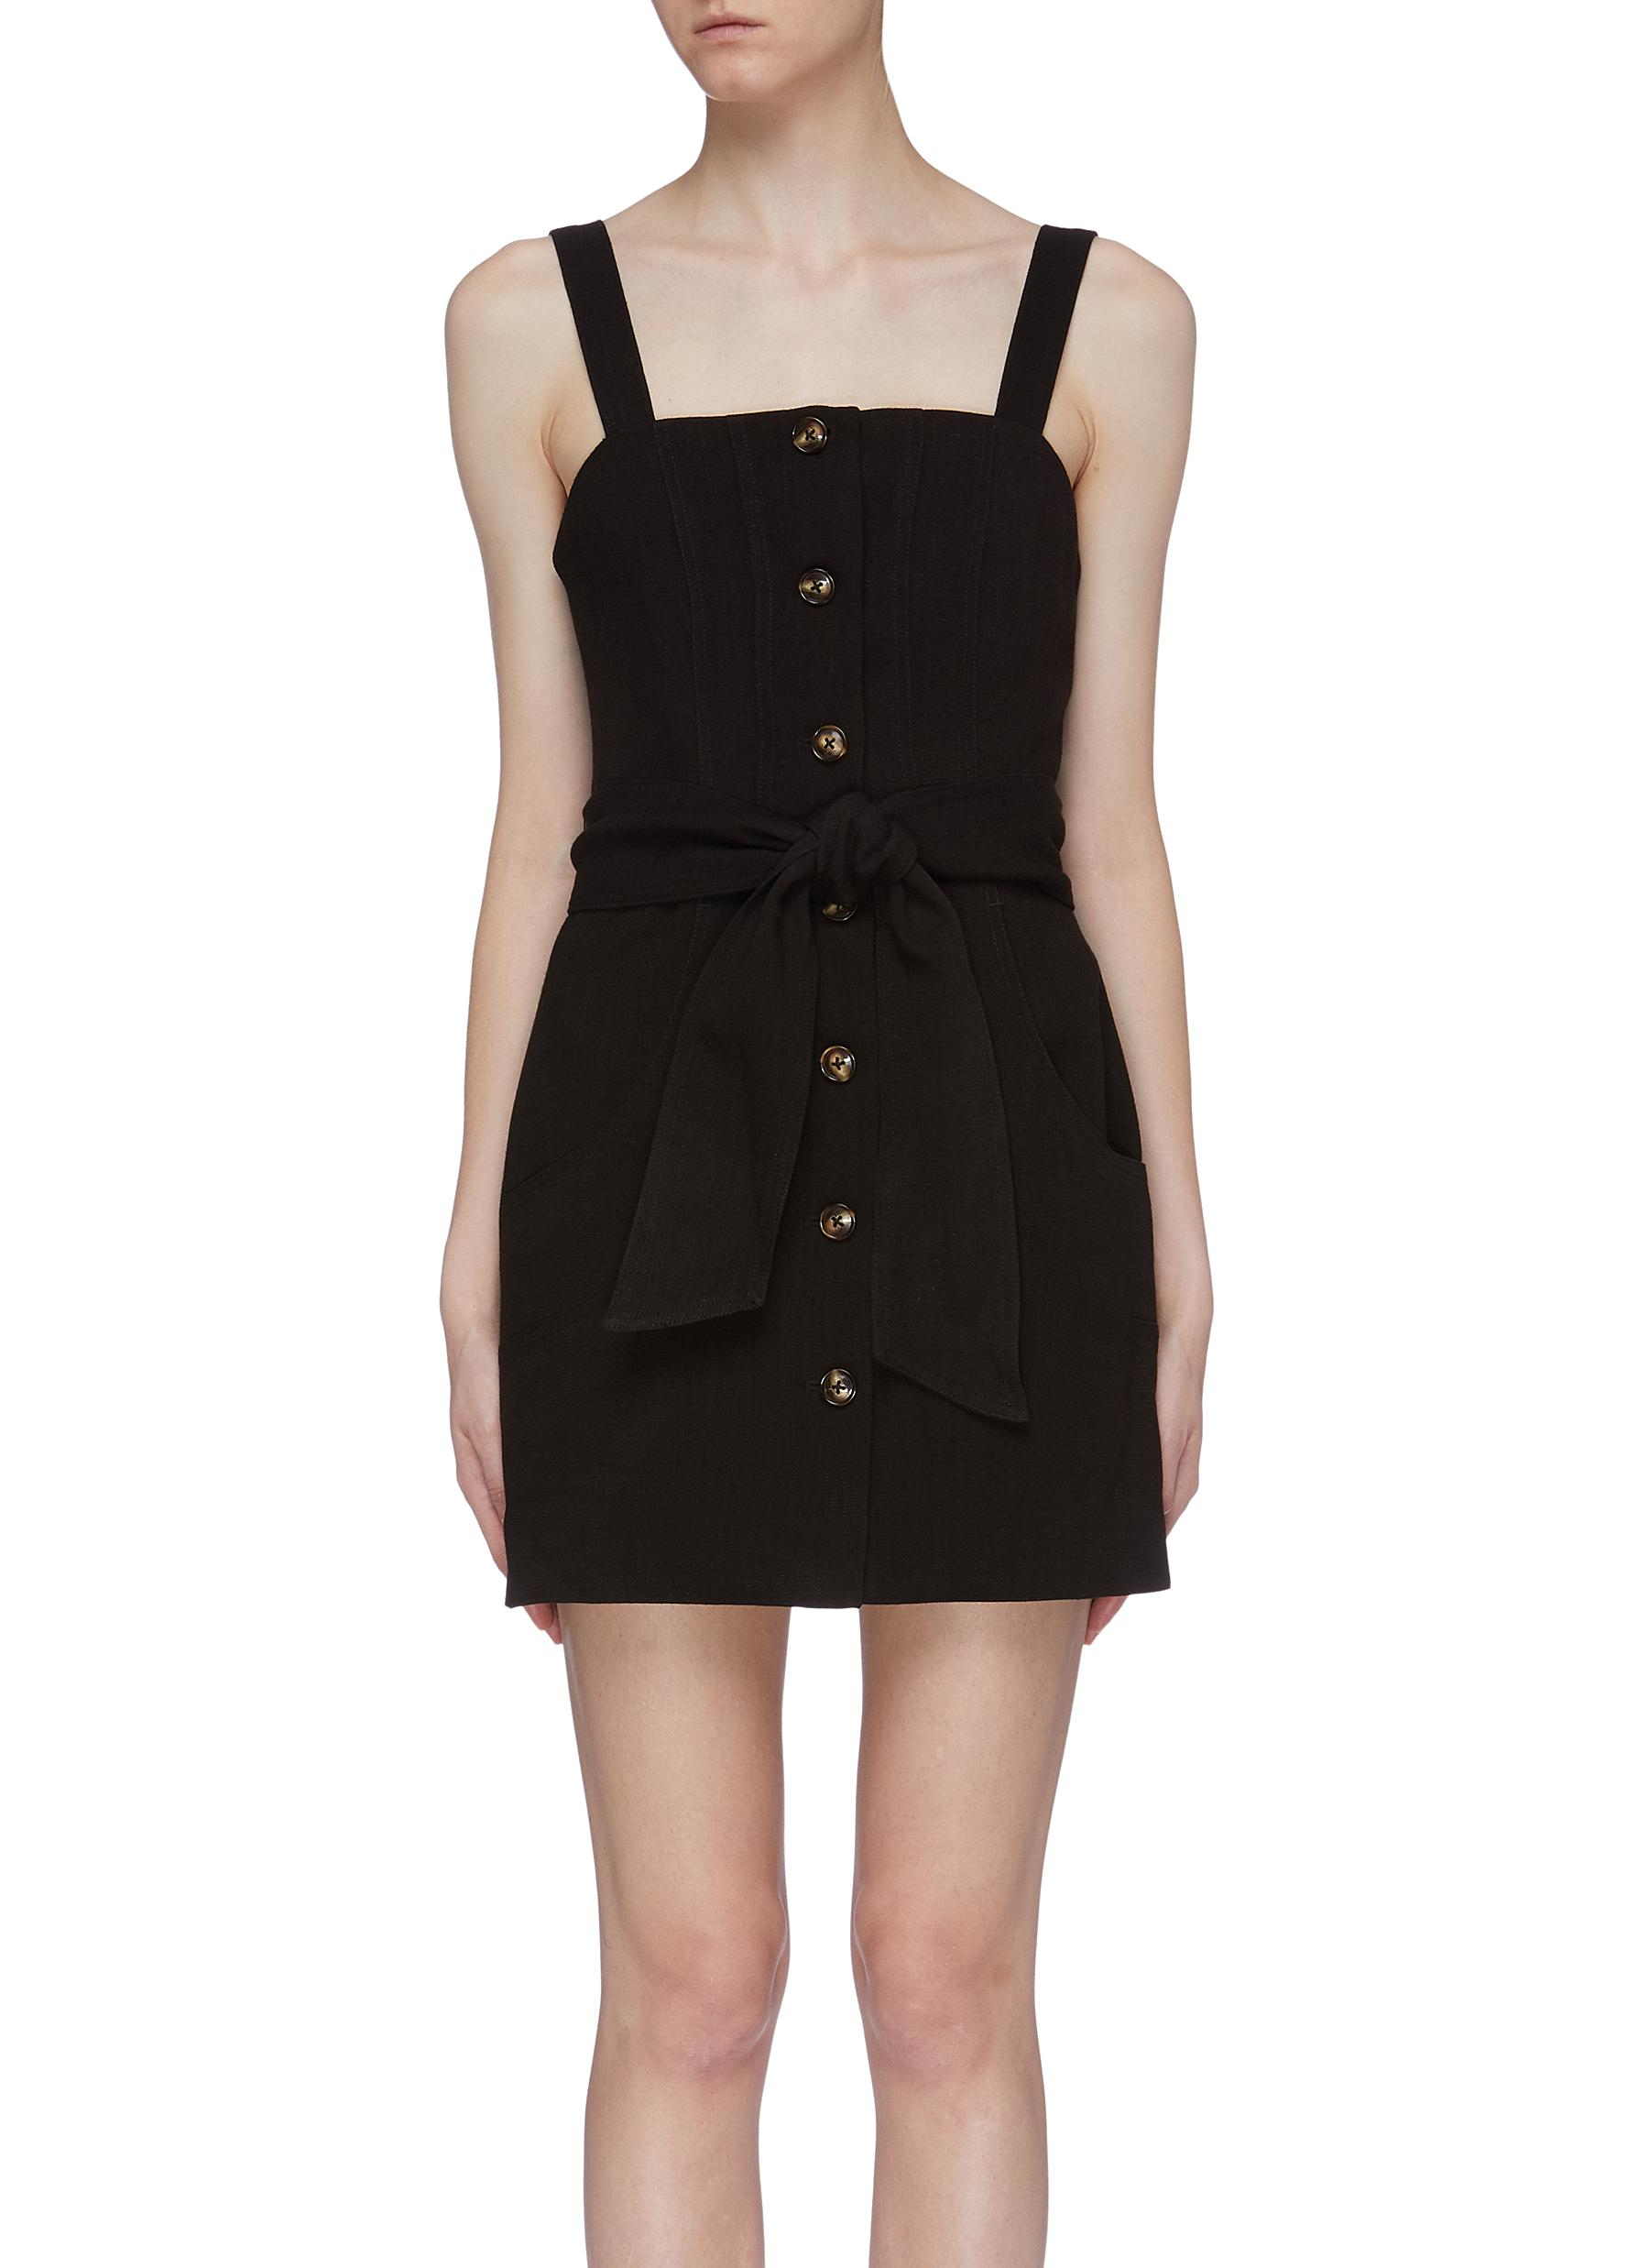 Collisions belted button front sleeveless dress by C/Meo Collective